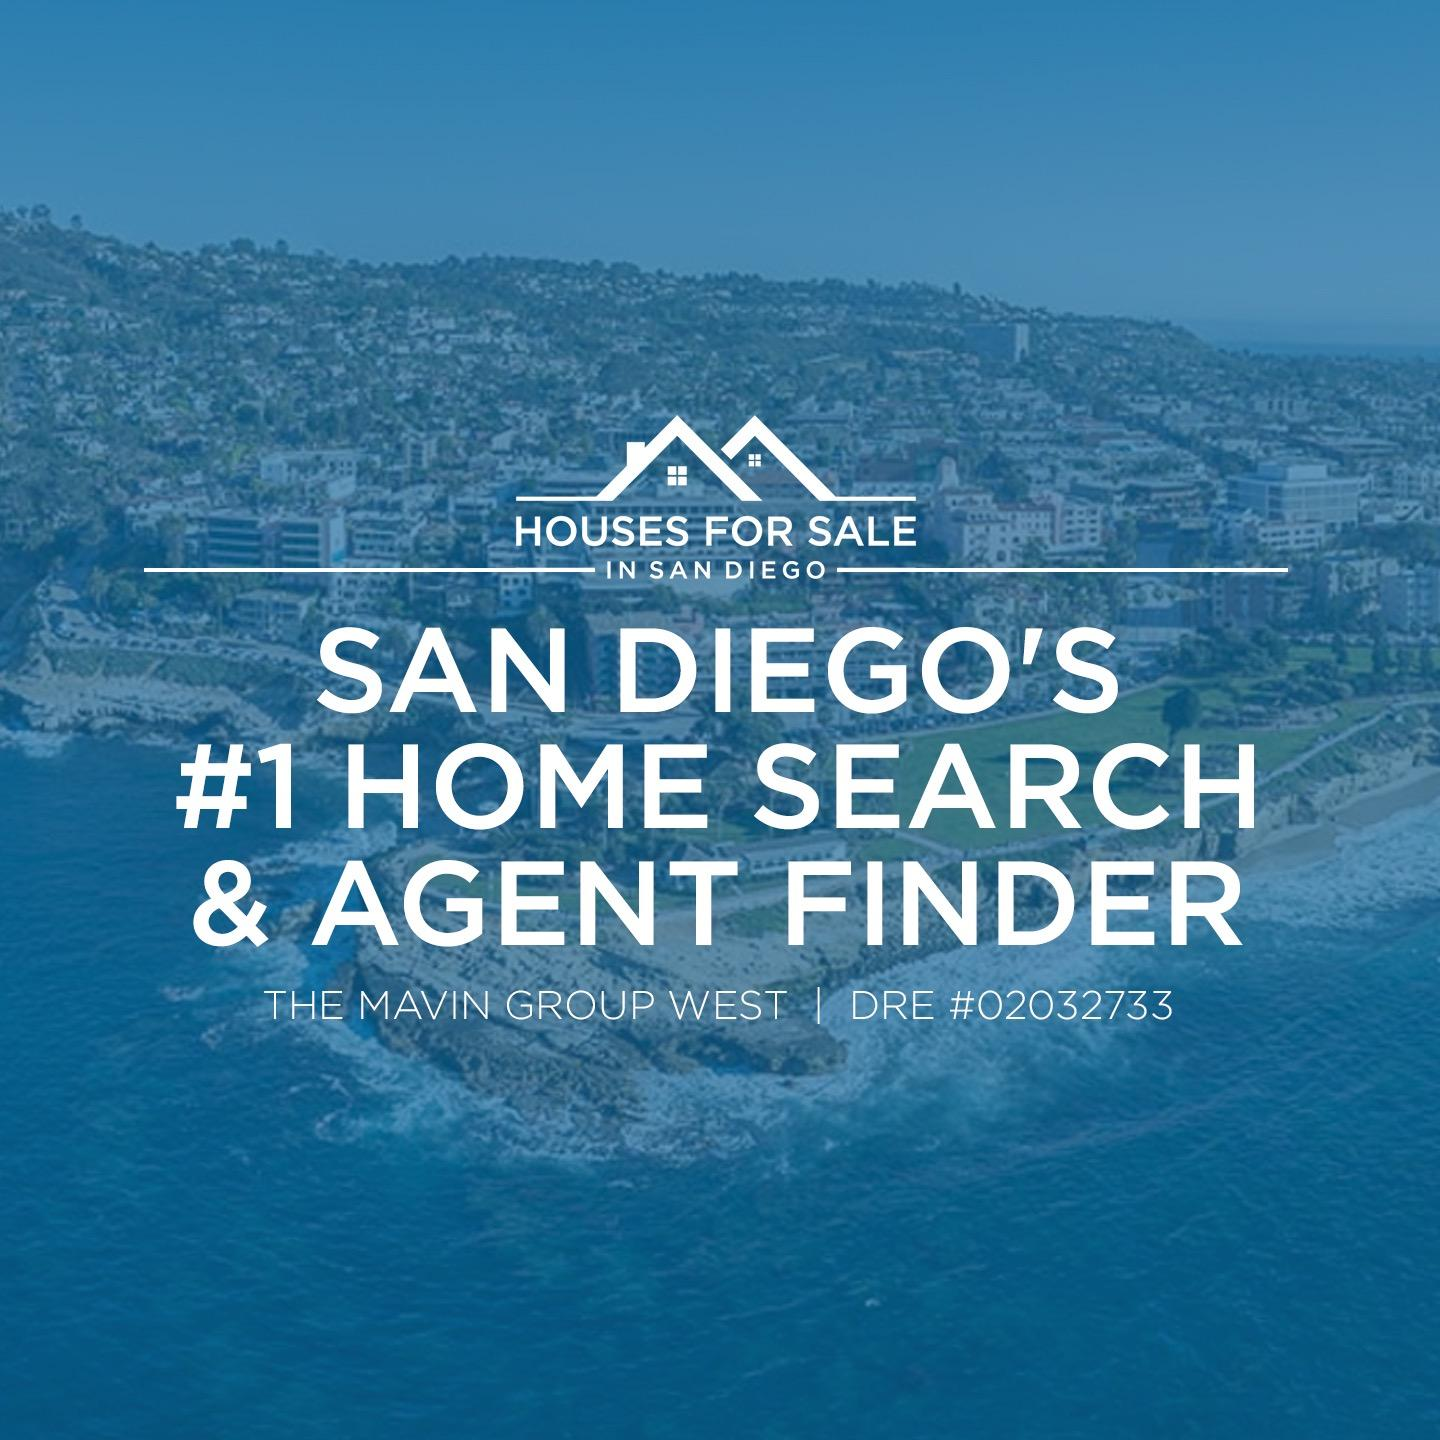 Houses for Sale in San Diego